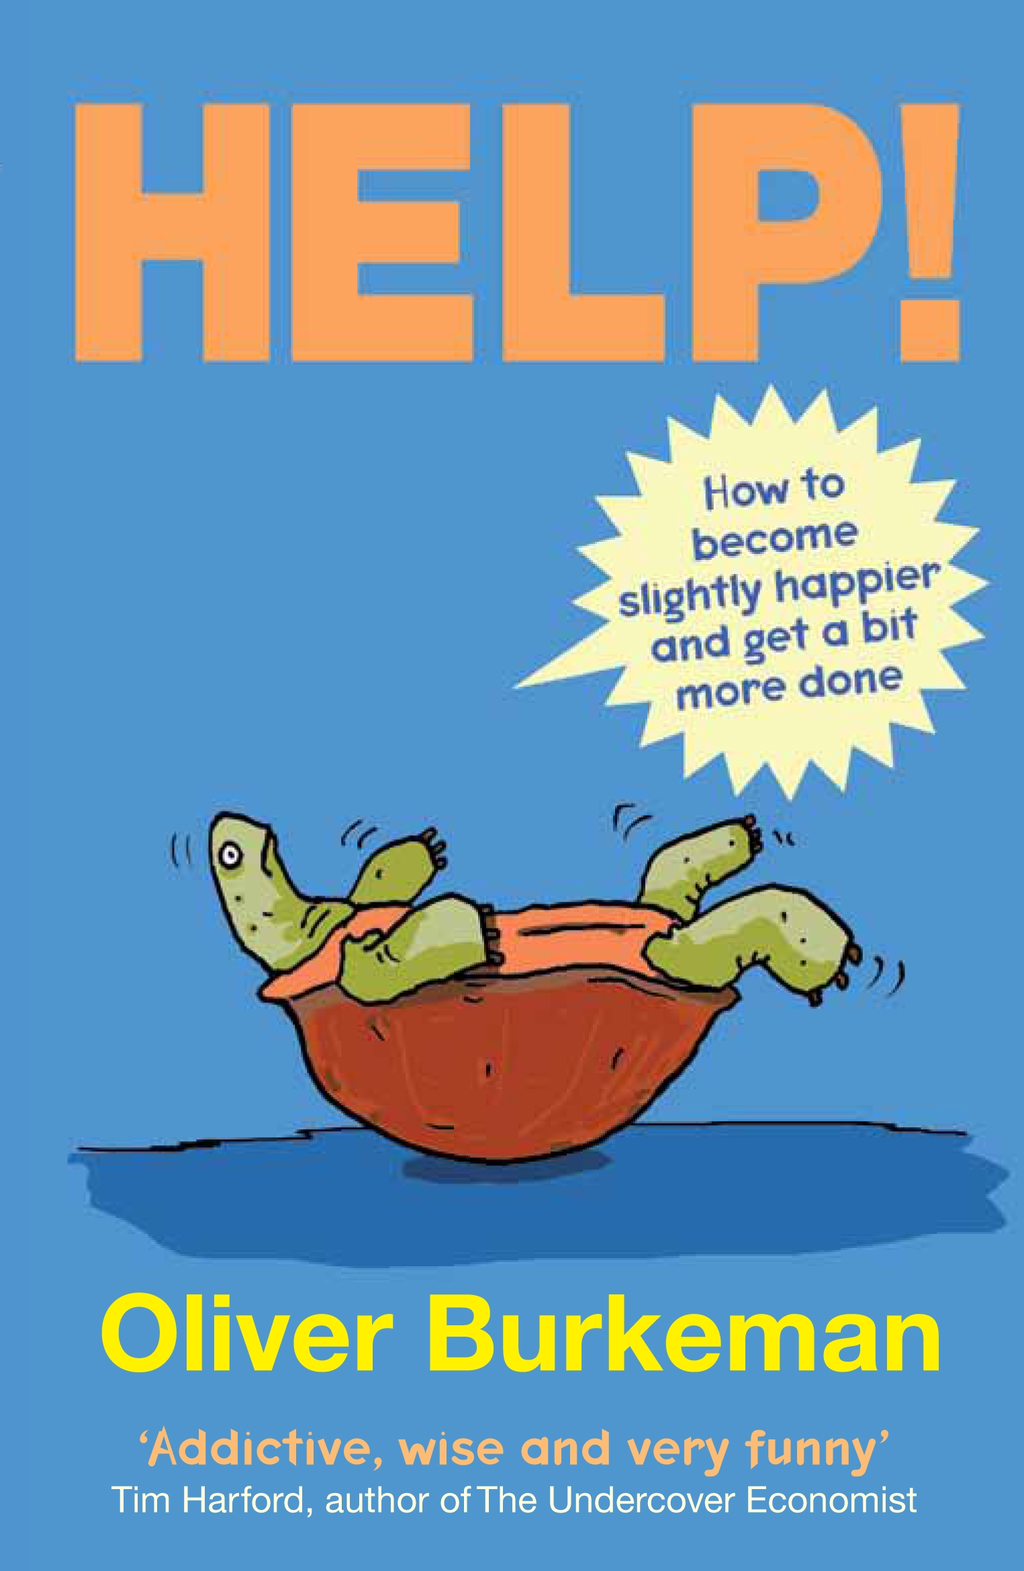 HELP!: How to Become Slightly Happier and Get a Bit More Done How to Become Slightly Happier and Get a Bit More Done